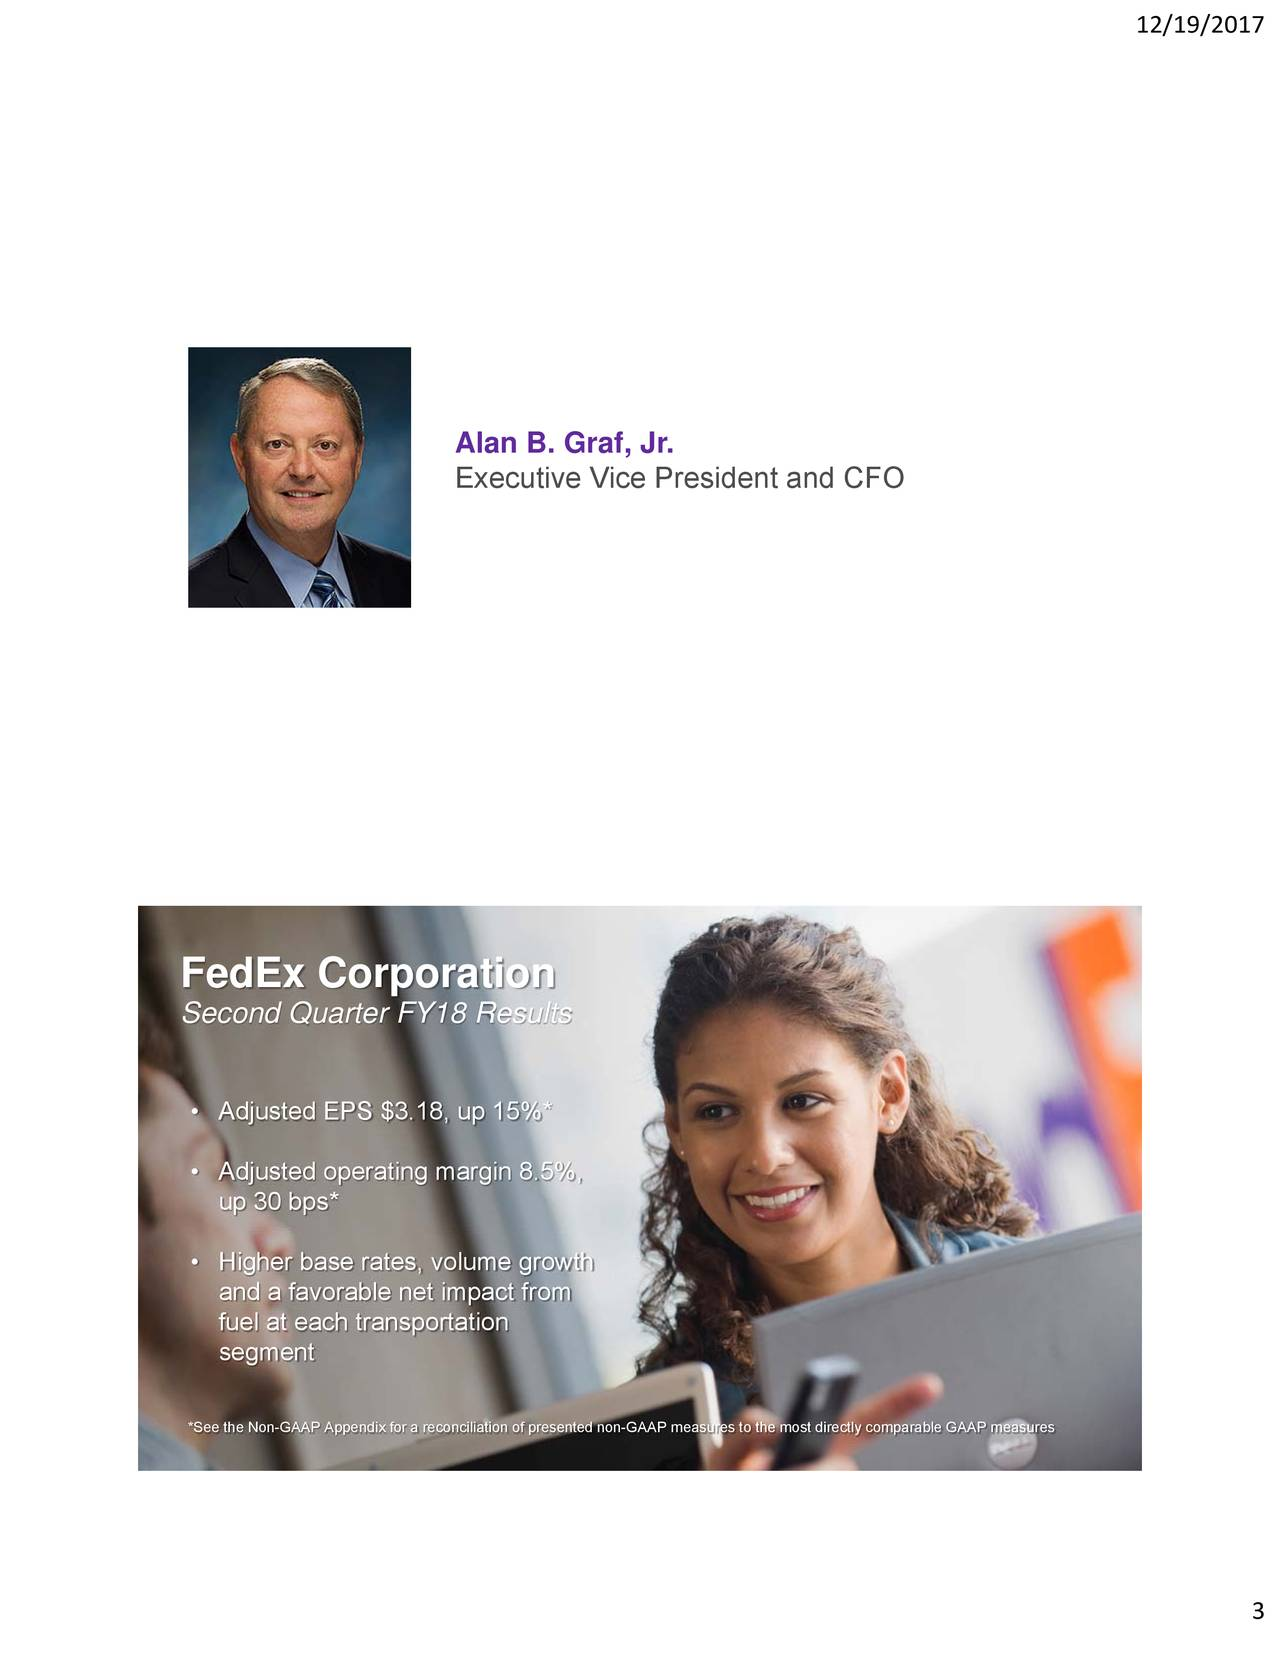 Alan B. Graf, Jr. Executive Vice President and CFO FedEx Corporation Second Quarter FY18 Results • Adjusted EPS $3.18, up 15%* • Adjusted operating margin 8.5%, up 30 bps* • Higher base rates, volume growth and a favorable net impact from fuel at each transportation segment *See the Non-GAAP Appendix for a reconciliation of presented non-GAAP measures to the most directly comparable GAAP measures 3